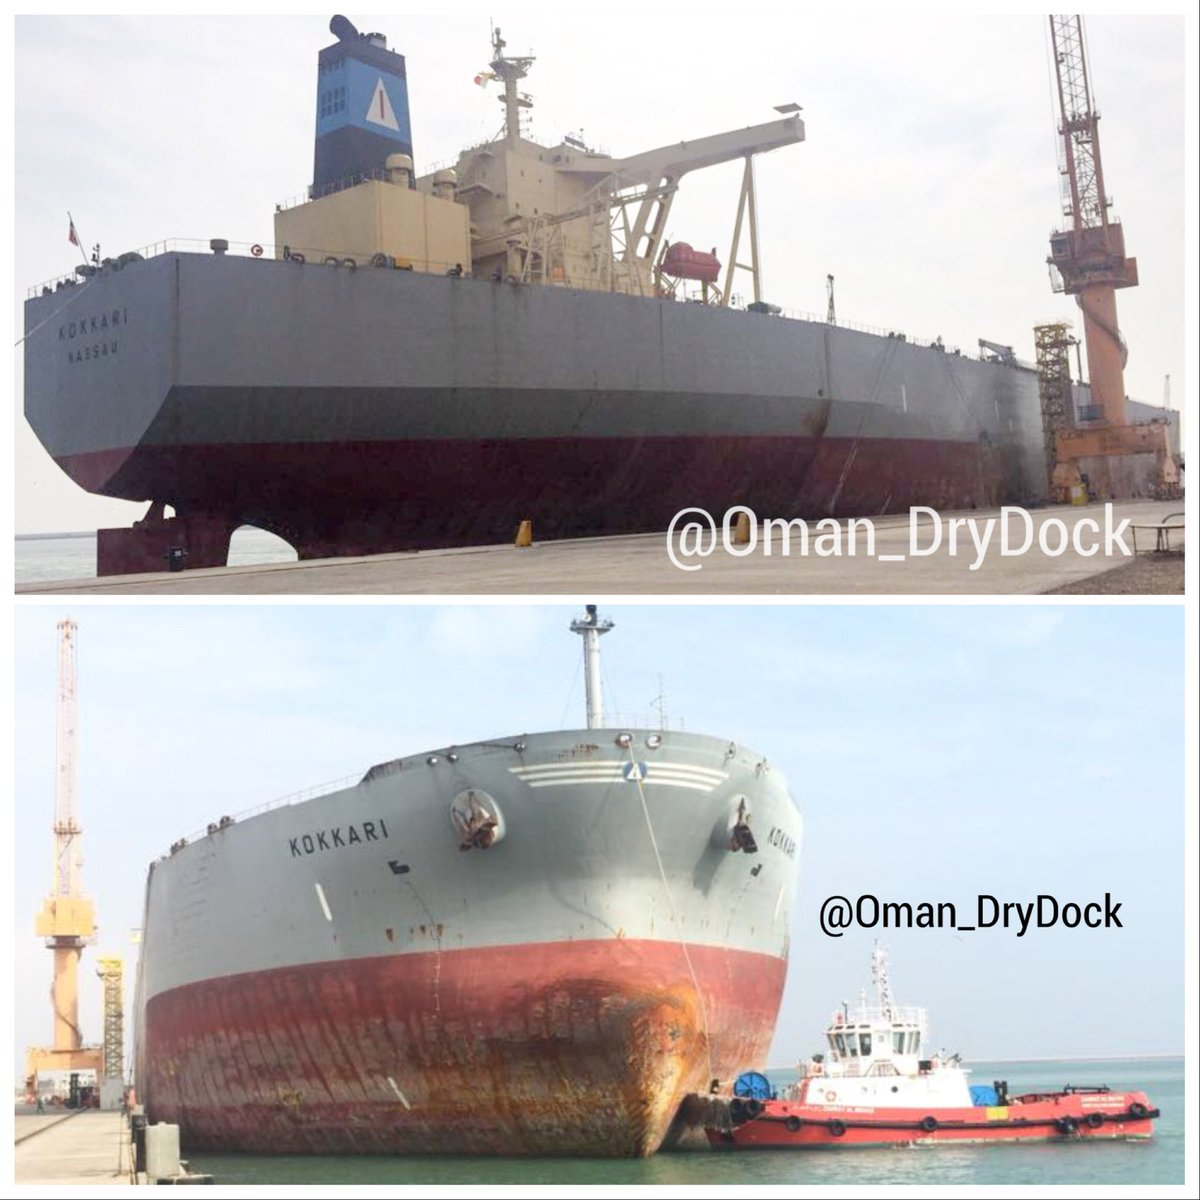 Oman Drydock Company On Twitter Greek Crude Oil Tanker Kokkari From Samos Steamship Co Arrives To Oman Drydock For Maintenance And General Repair Jobs Https T Co Es58awlaqh